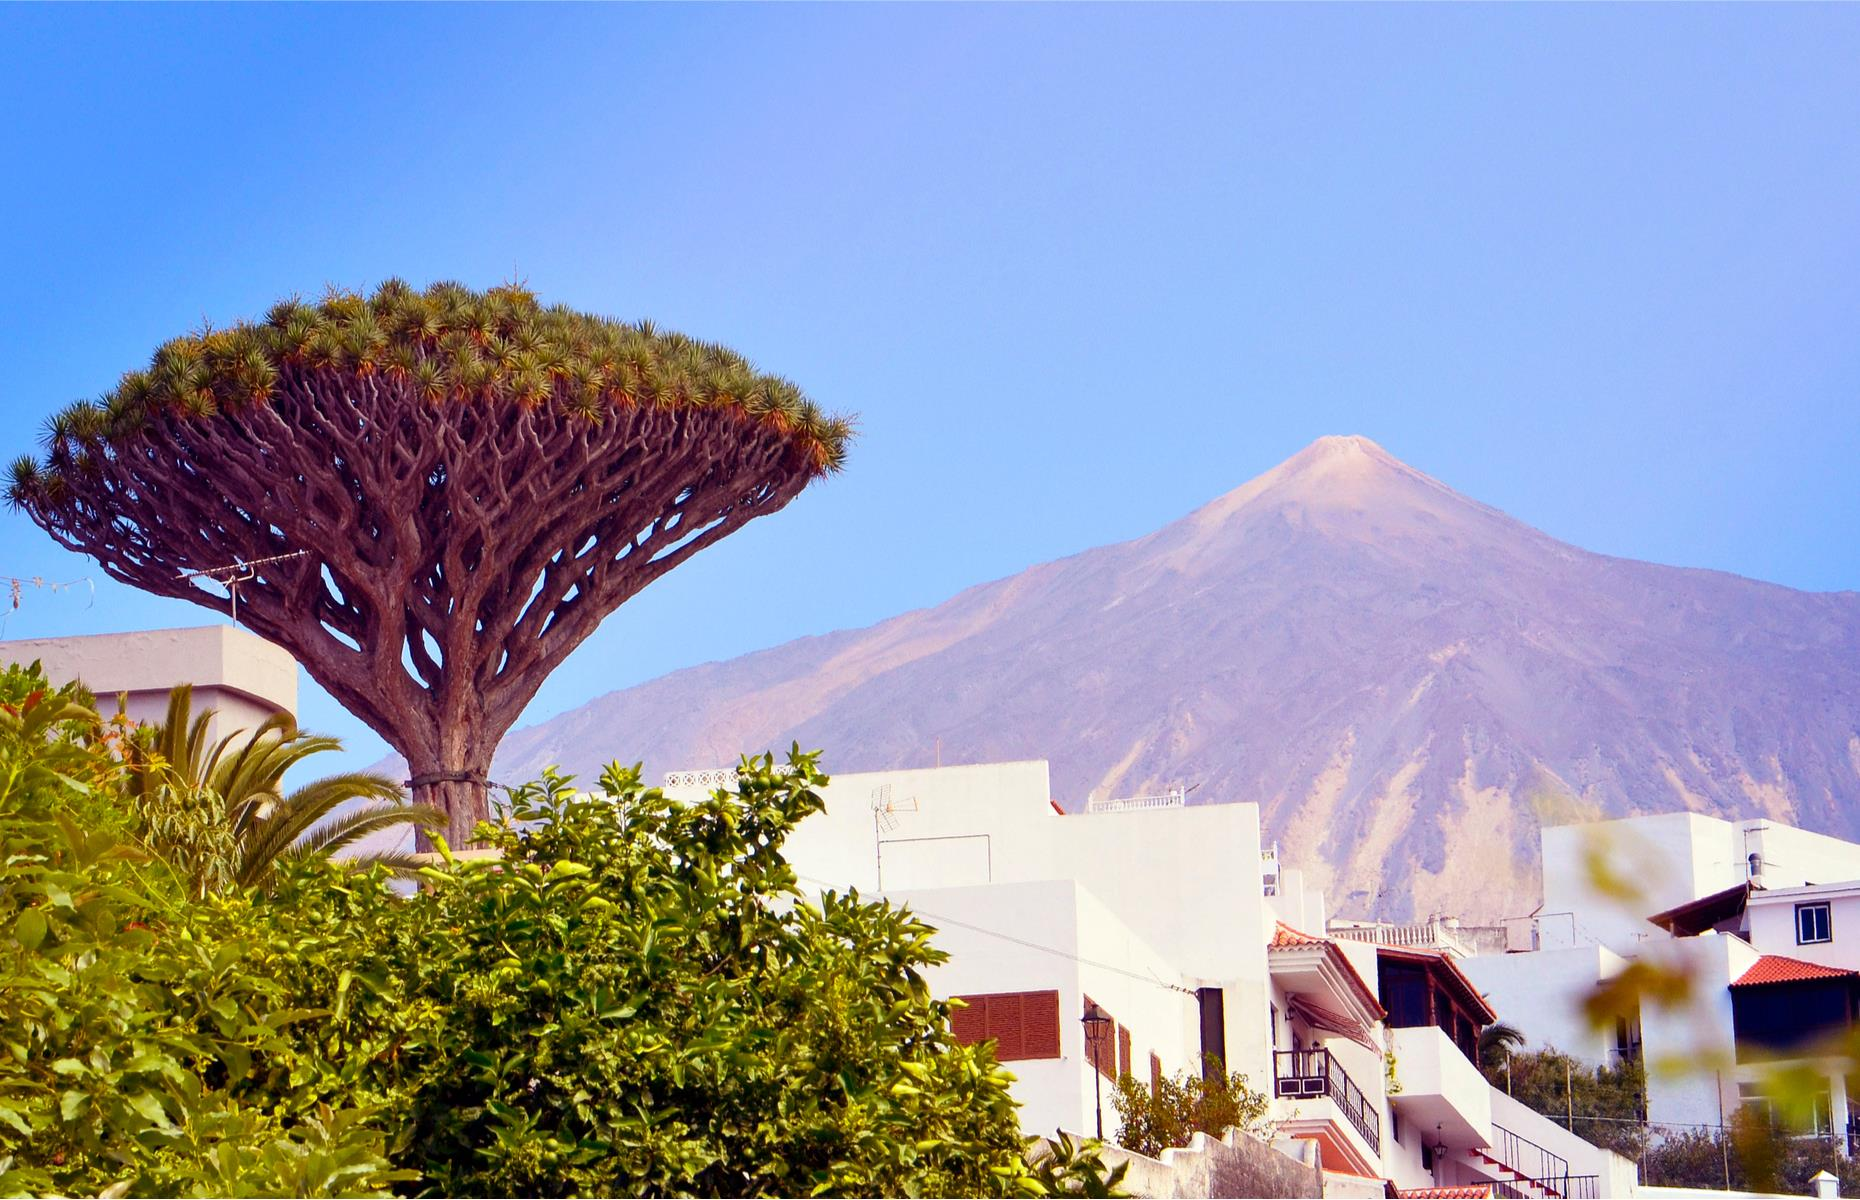 Slide 21 of 27: In spite of a warm and humid climate, Tenerife is a luscious and fertile island and the presence of dragon trees is testament to this. These spectacular subtropical trees can be found across the Canaries, but they've become a symbol of Tenerife.